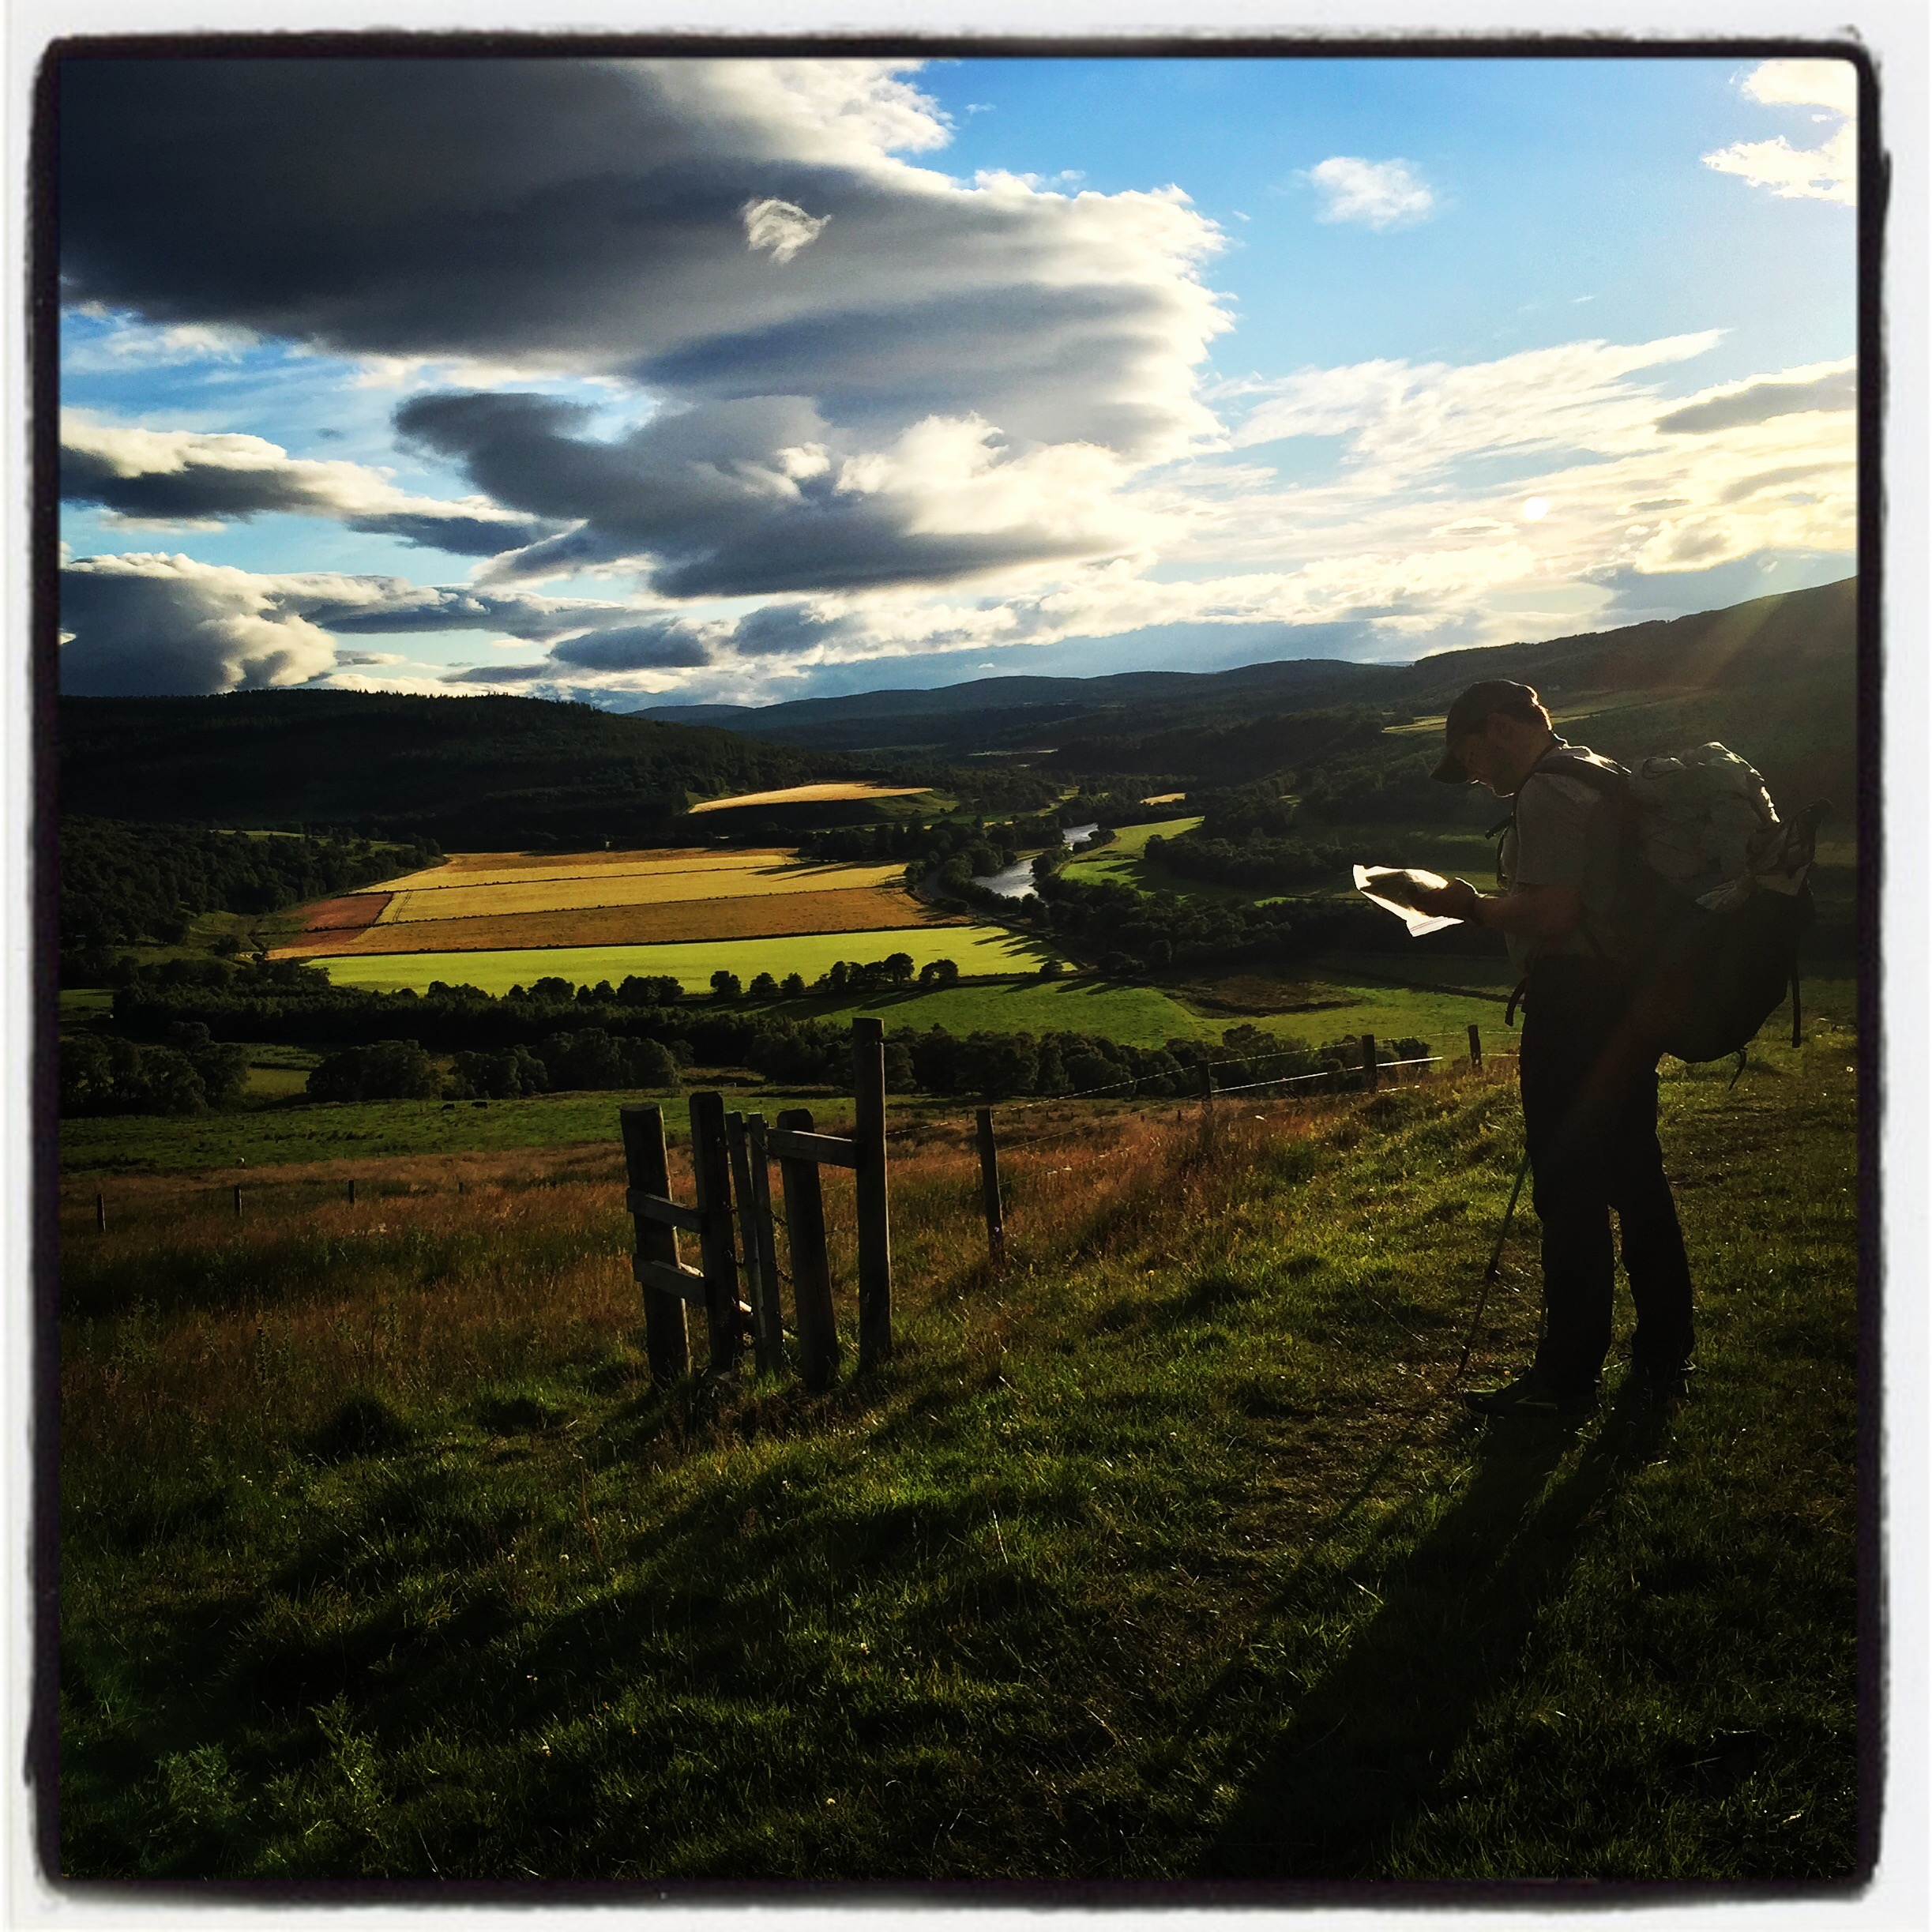 Fields of barley, golden light, and soft trails on the Speyside Way